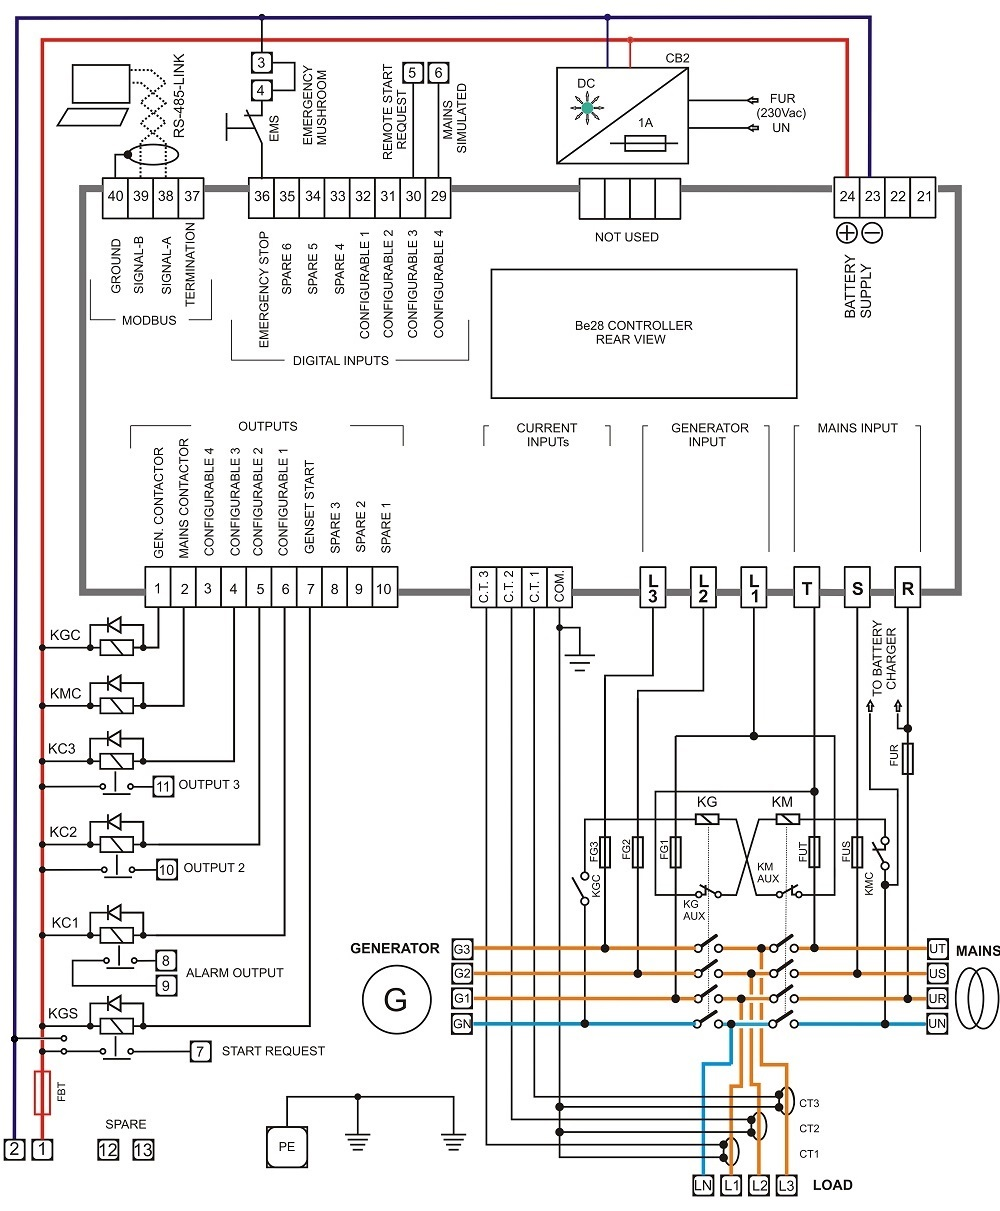 Cube Relay Wiring Diagrams 24v Diagram 8 Pin Base Get Free Image About 11